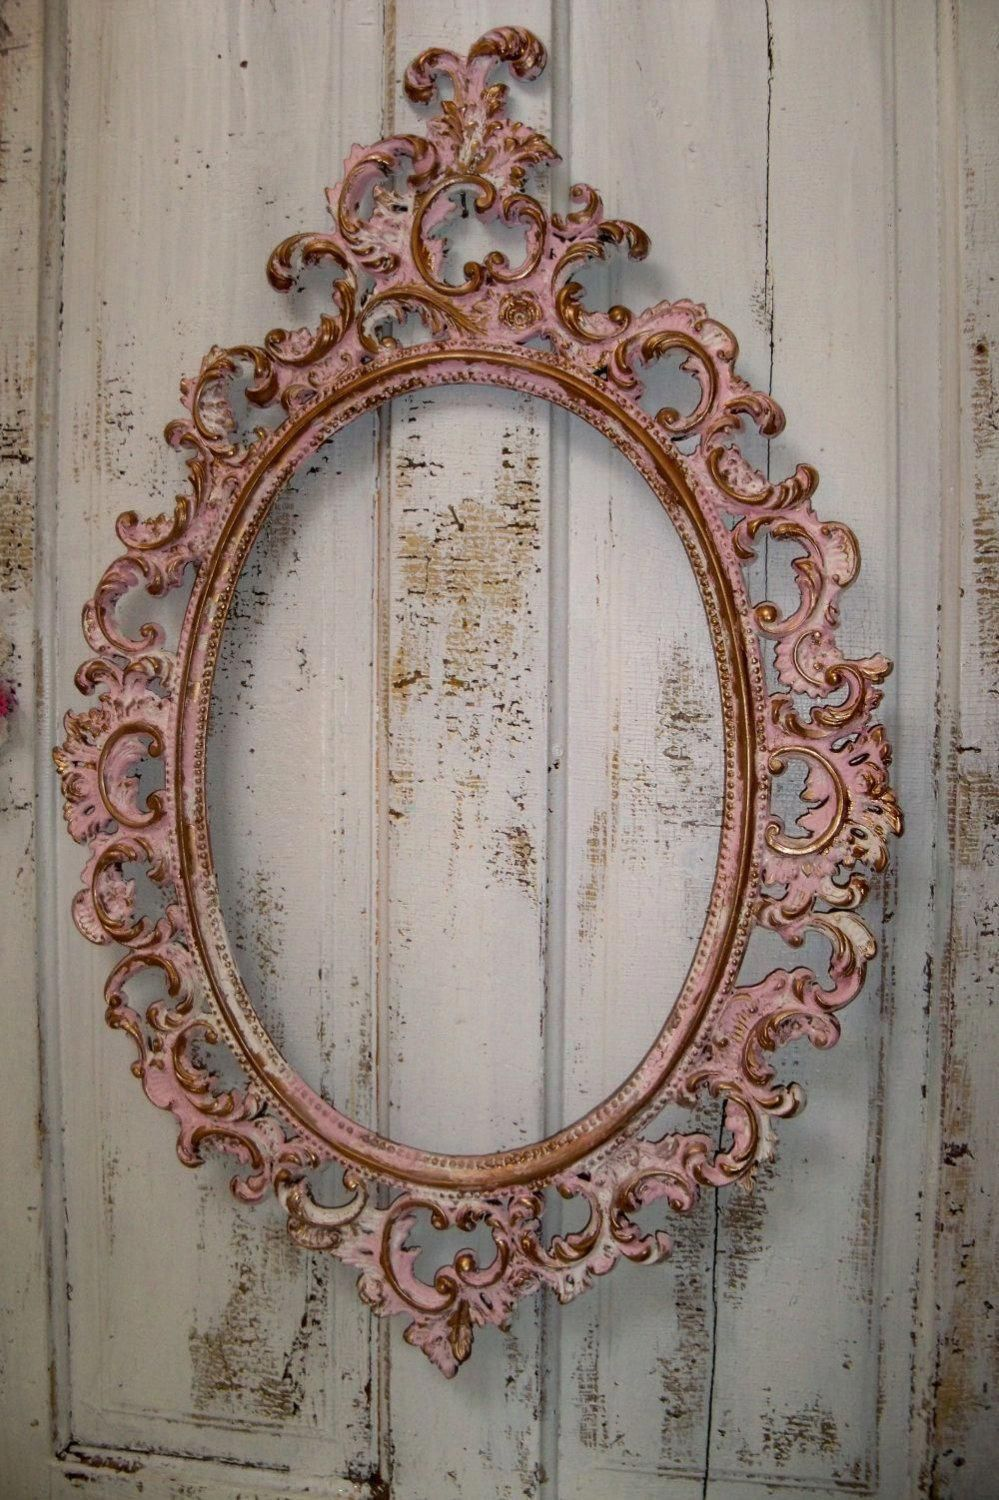 a9068c8421ad Pink ornate large frame accented white gold vintage shabby chic oval  distressed wall decor Anita Spero